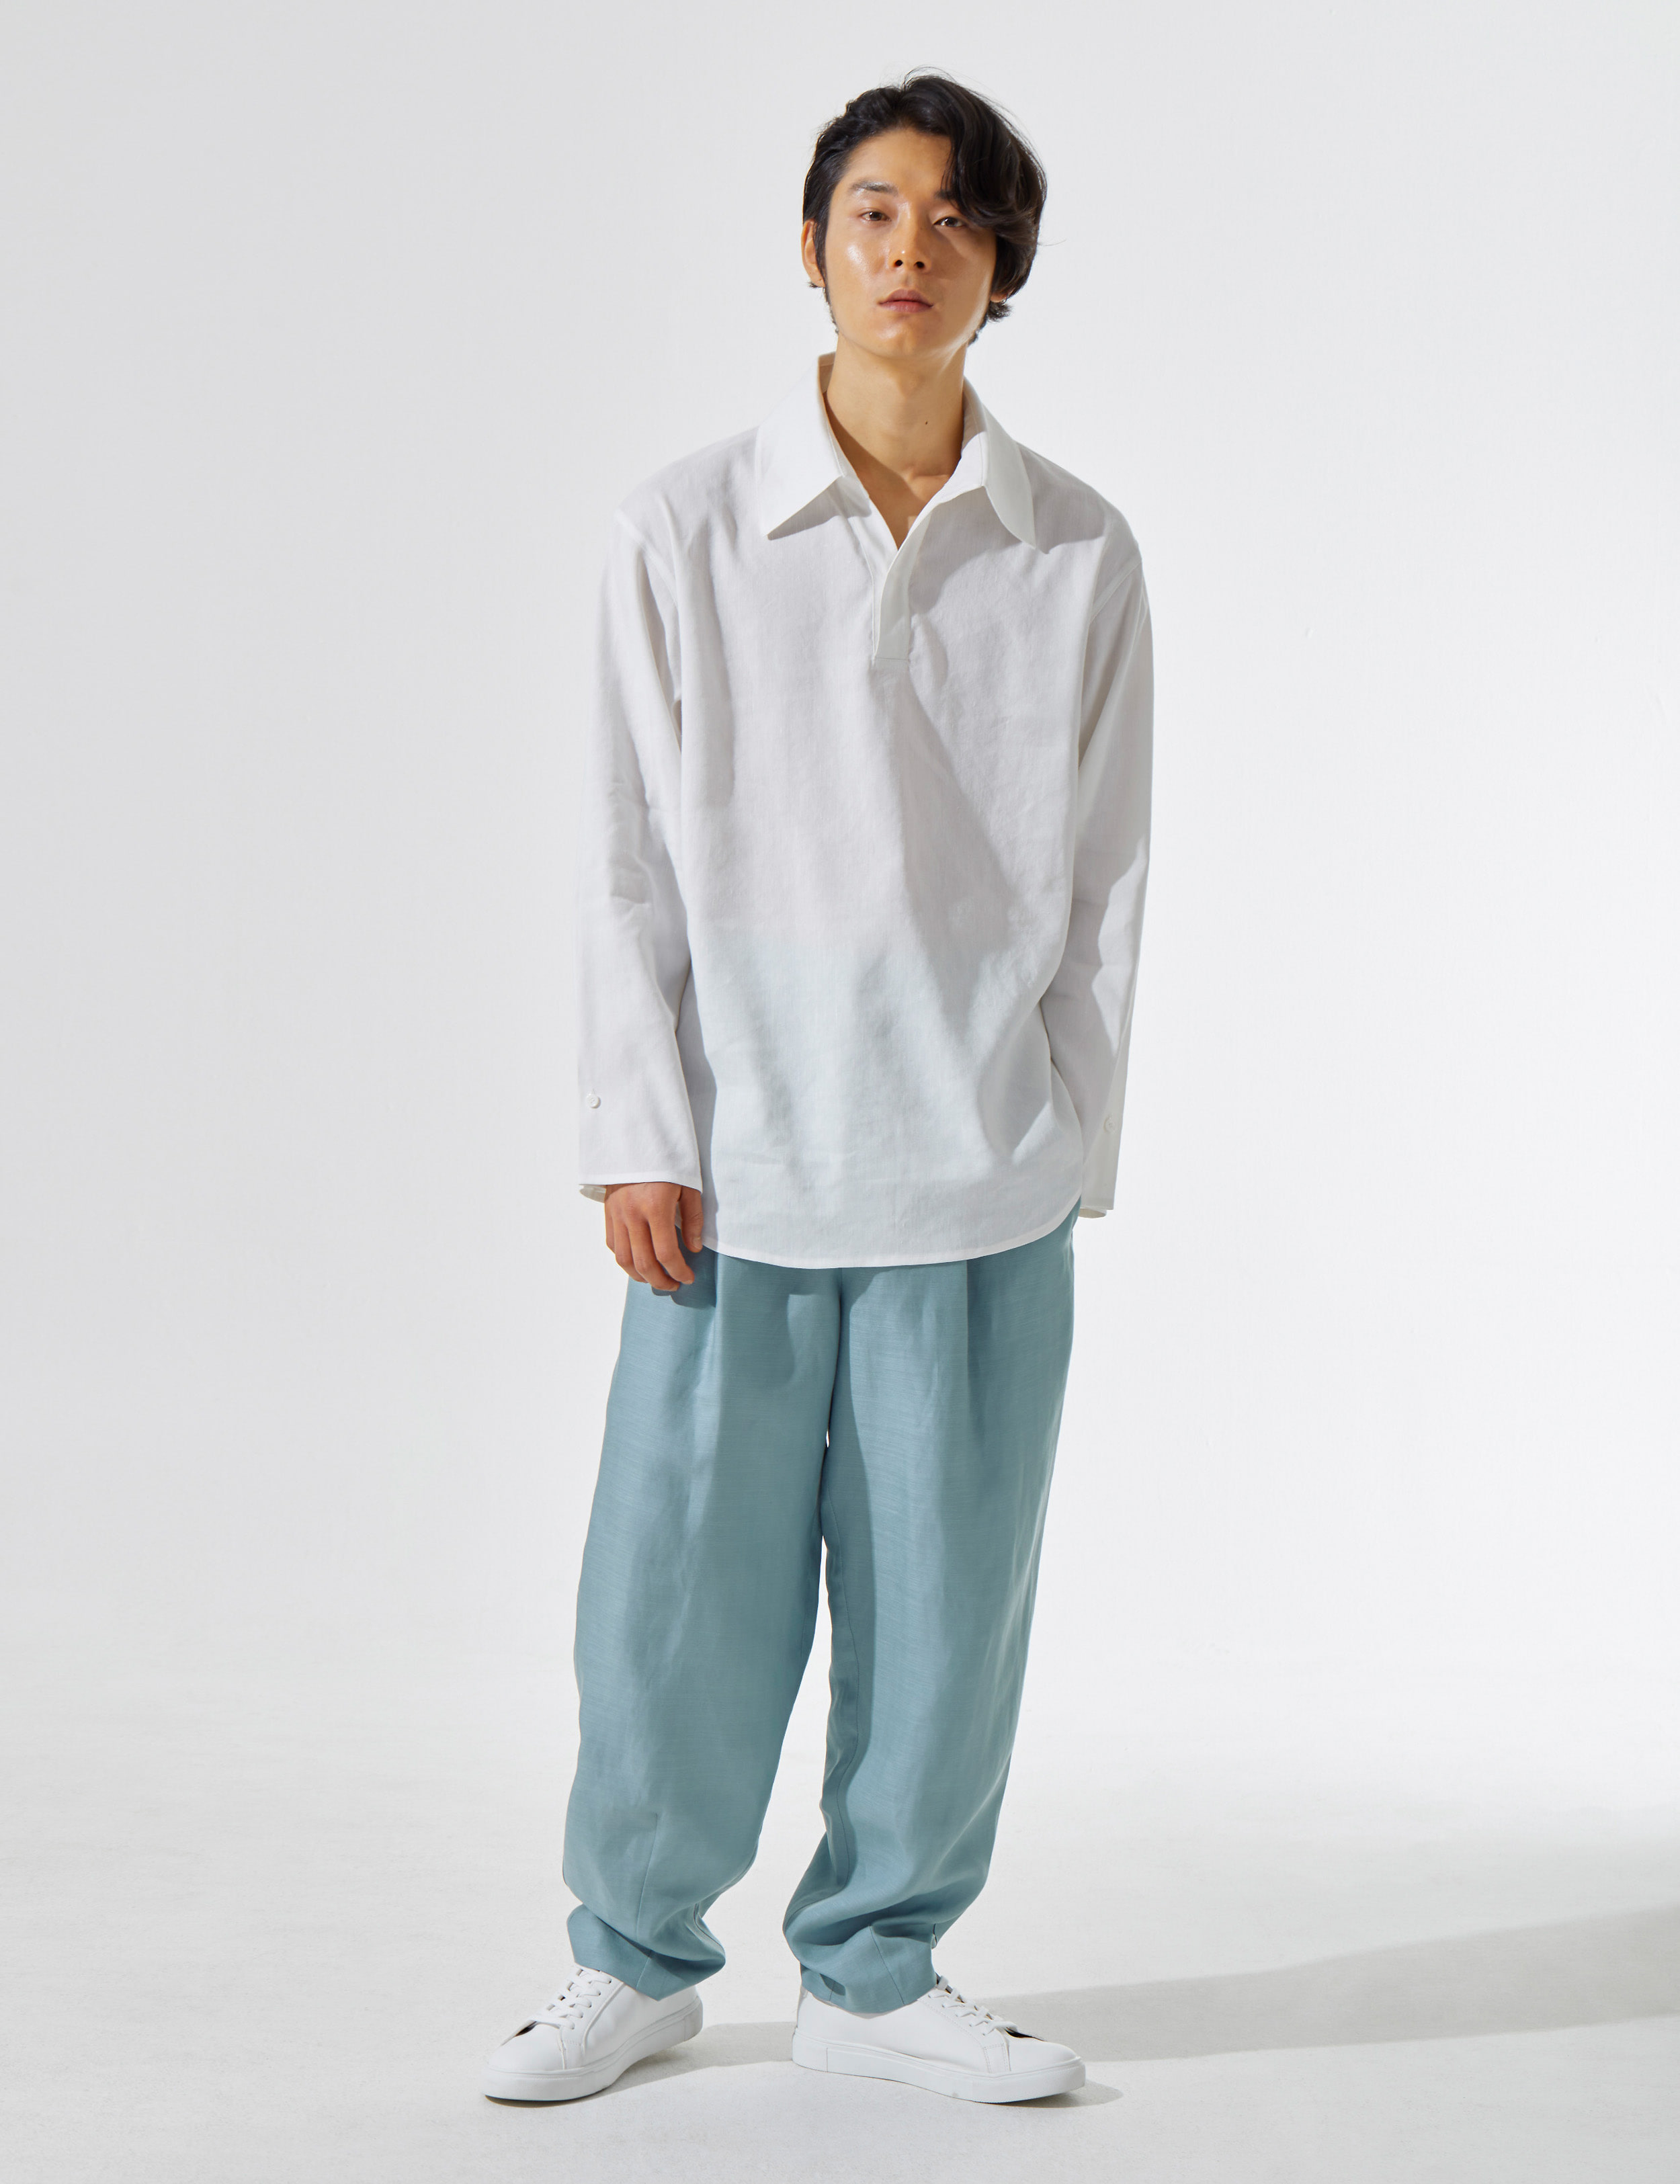 N.7 Waist wide pants Ciel